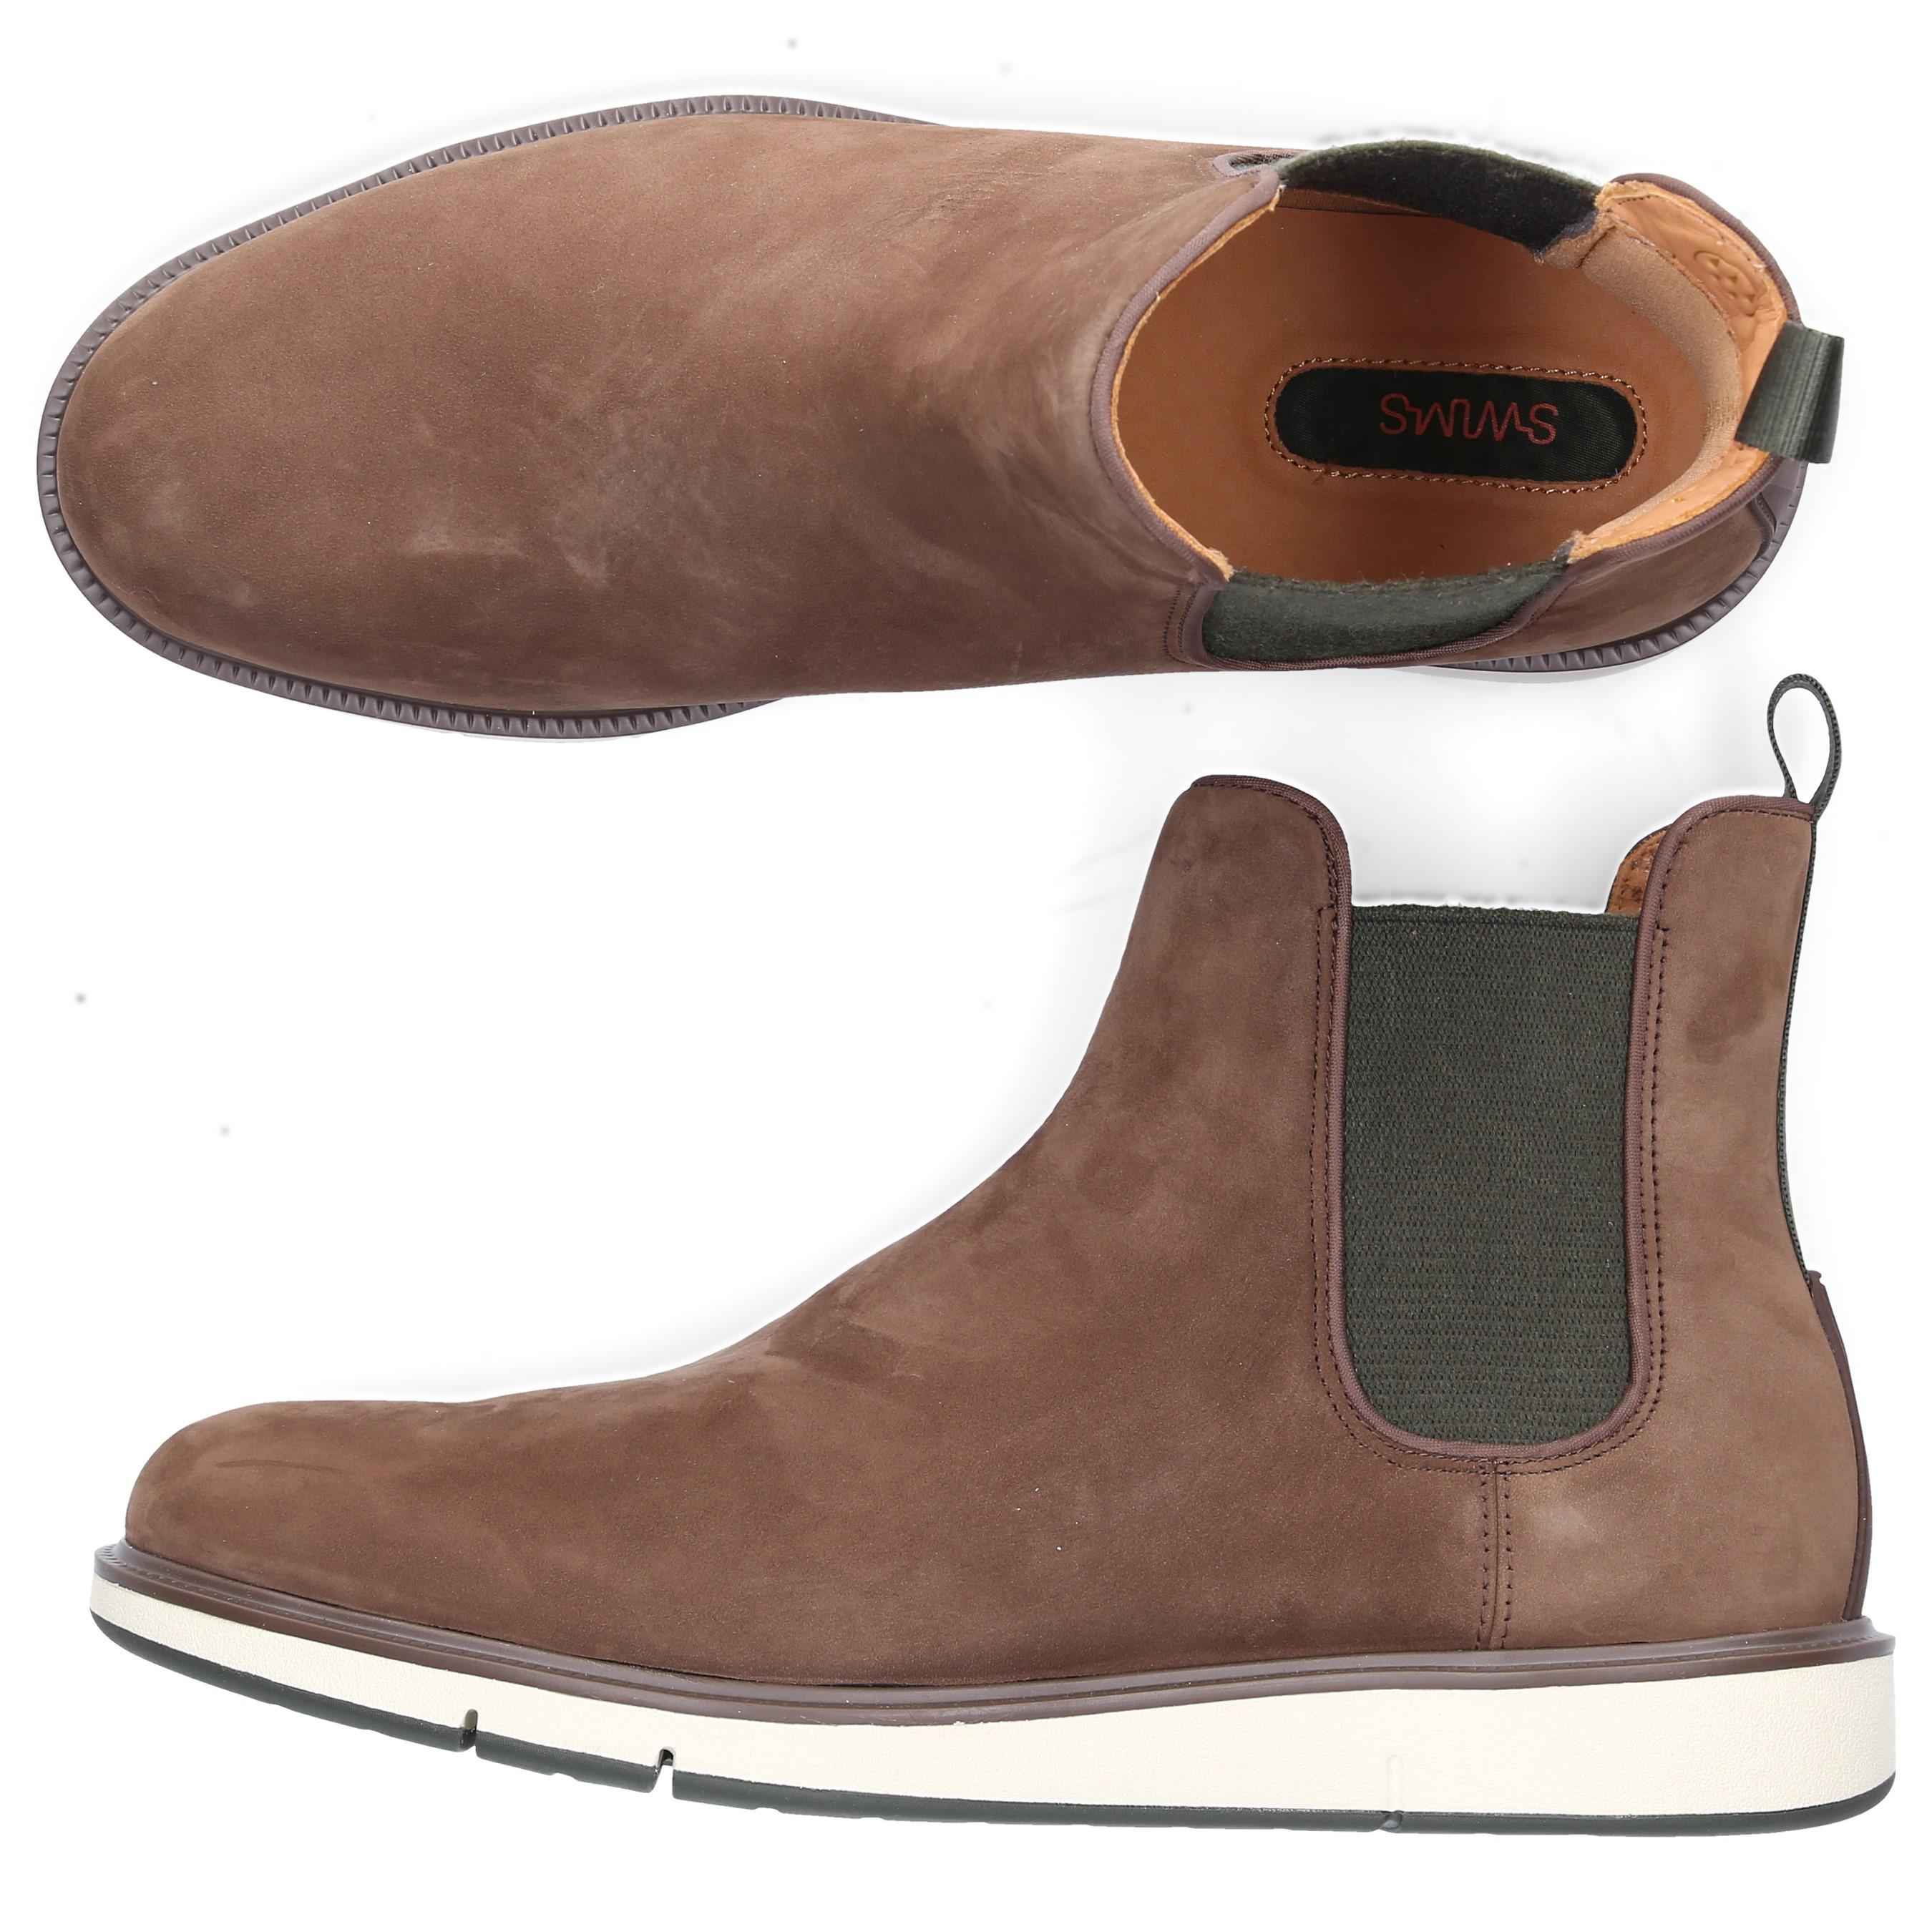 Swims Chelsea Stiefel Stiefel Chelsea Motion Chelsea Suede Braun in Braun for Men ... 362cfc